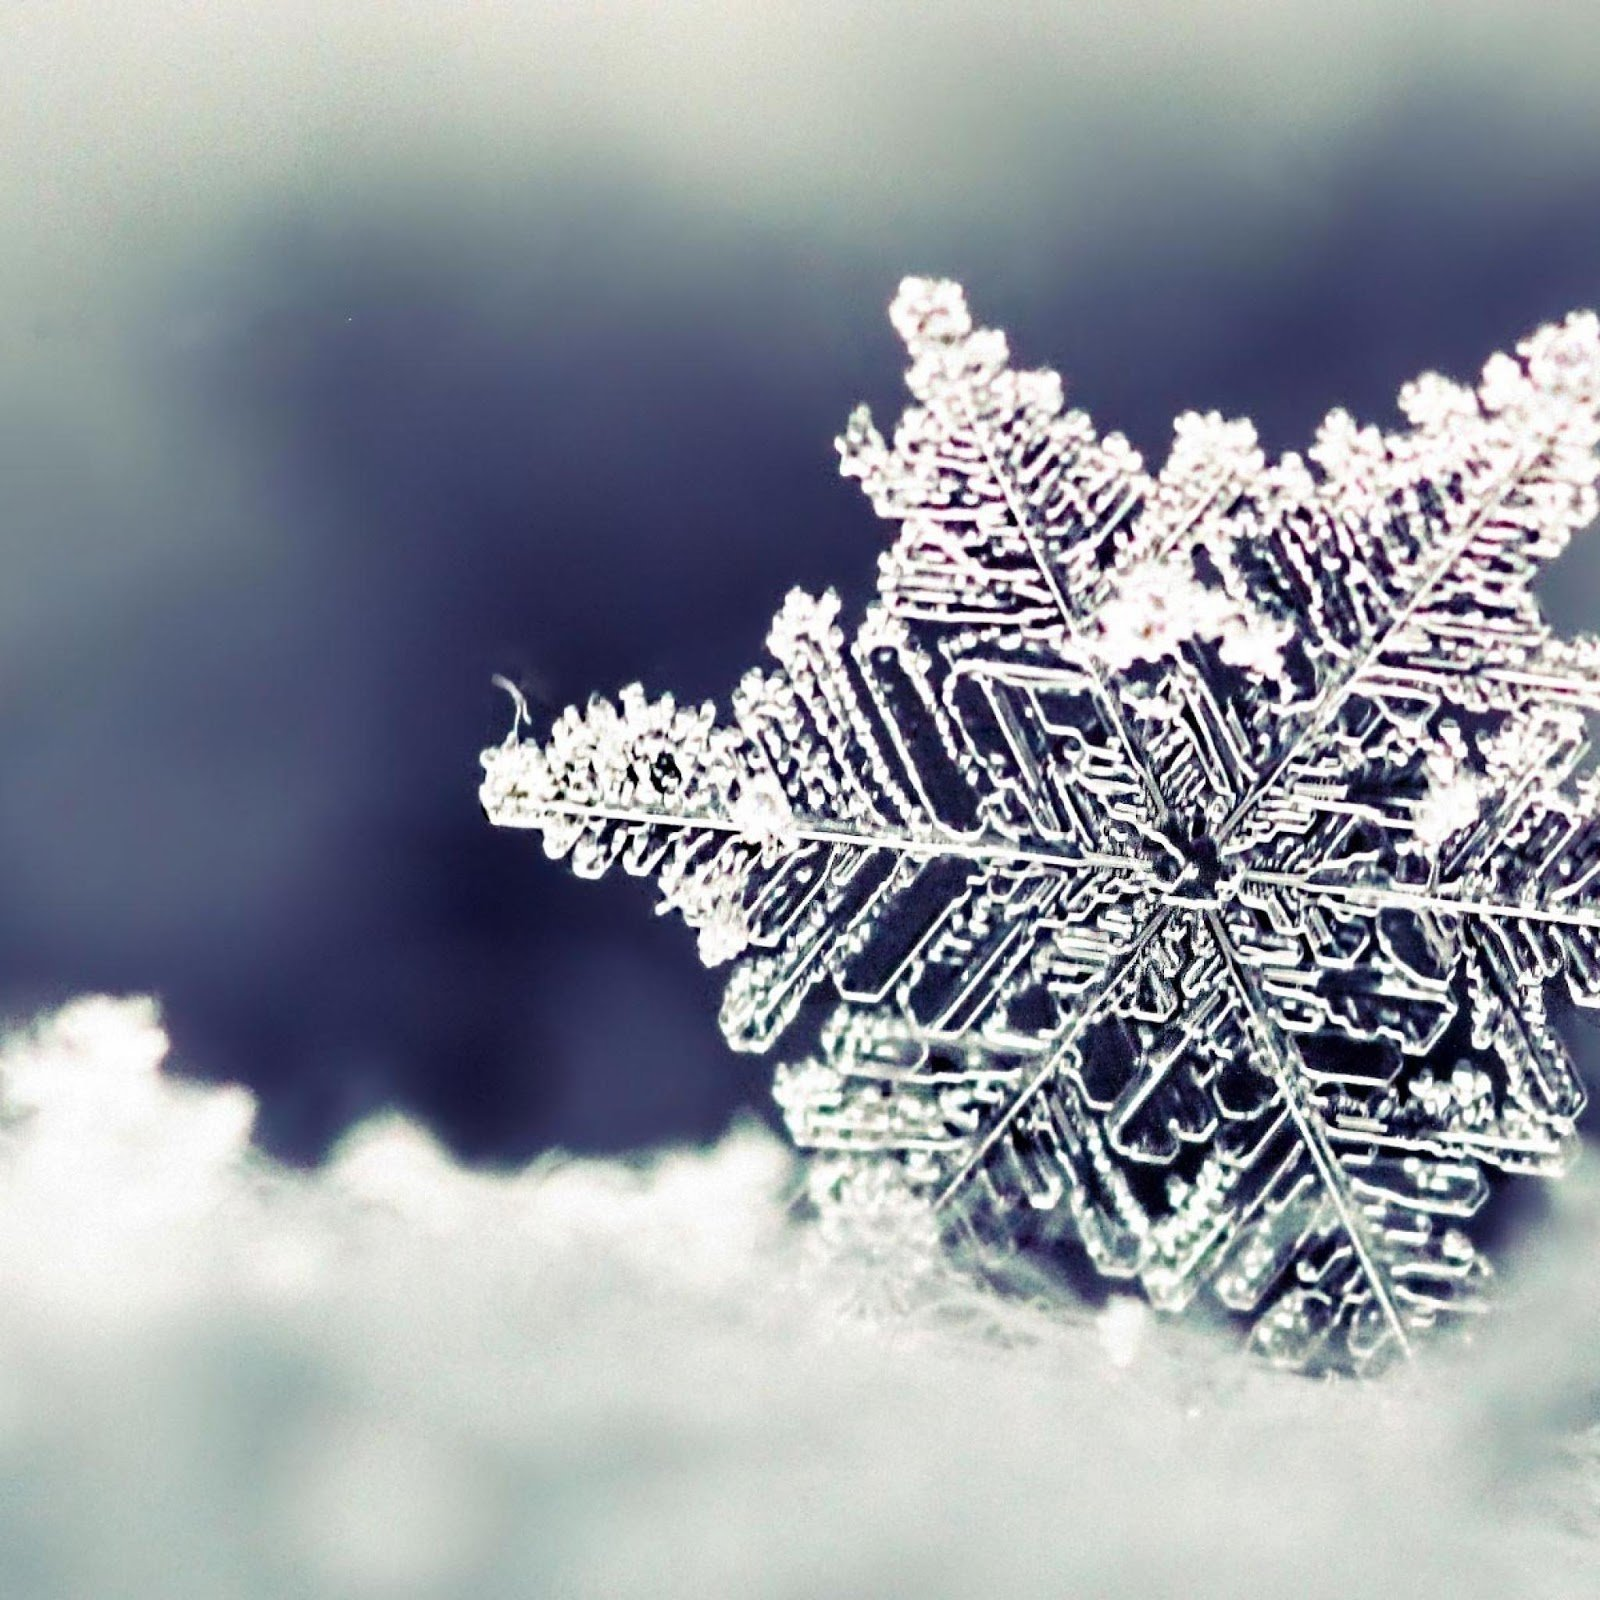 Winter Themed HD Wallpapers for iPad 4   Gadgets Apps and Flash Games 1600x1600